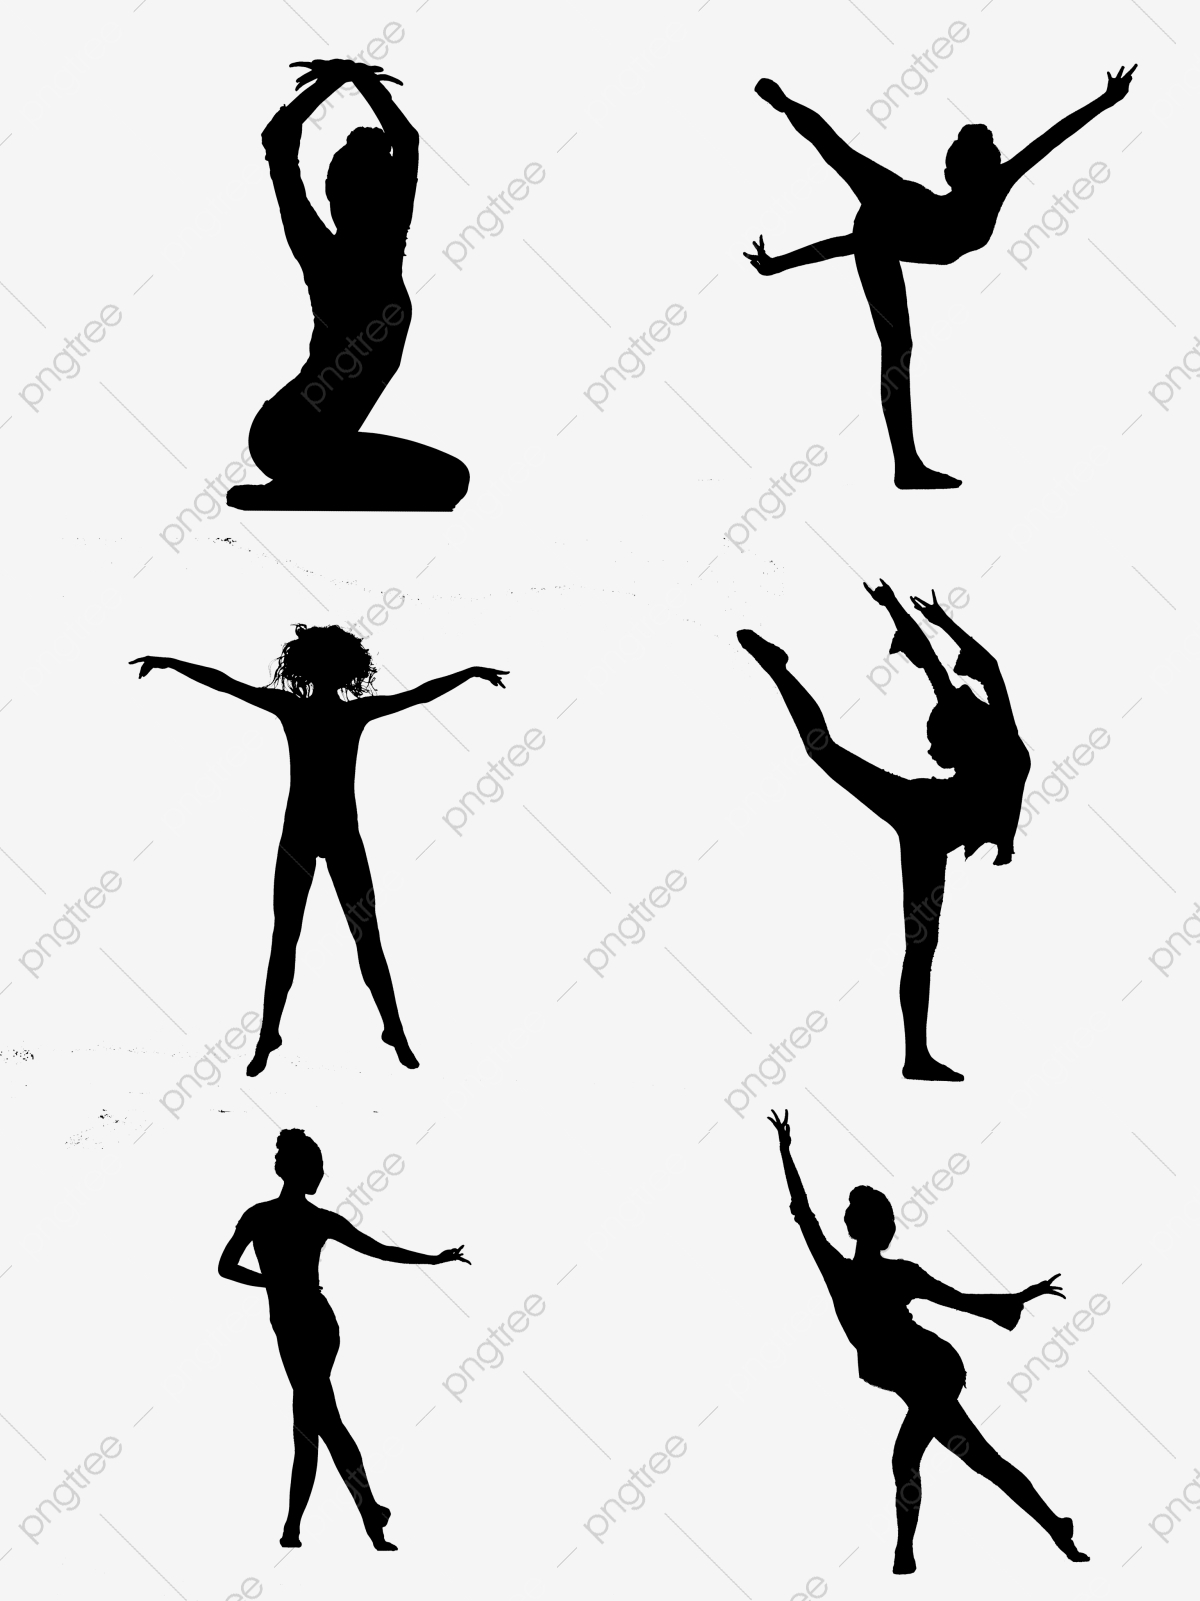 Black Female Dancing Silhouette Character Silhouette People Silhouette Female Silhouette Dancing Silhouette Png Transparent Clipart Image And Psd File For Free Download